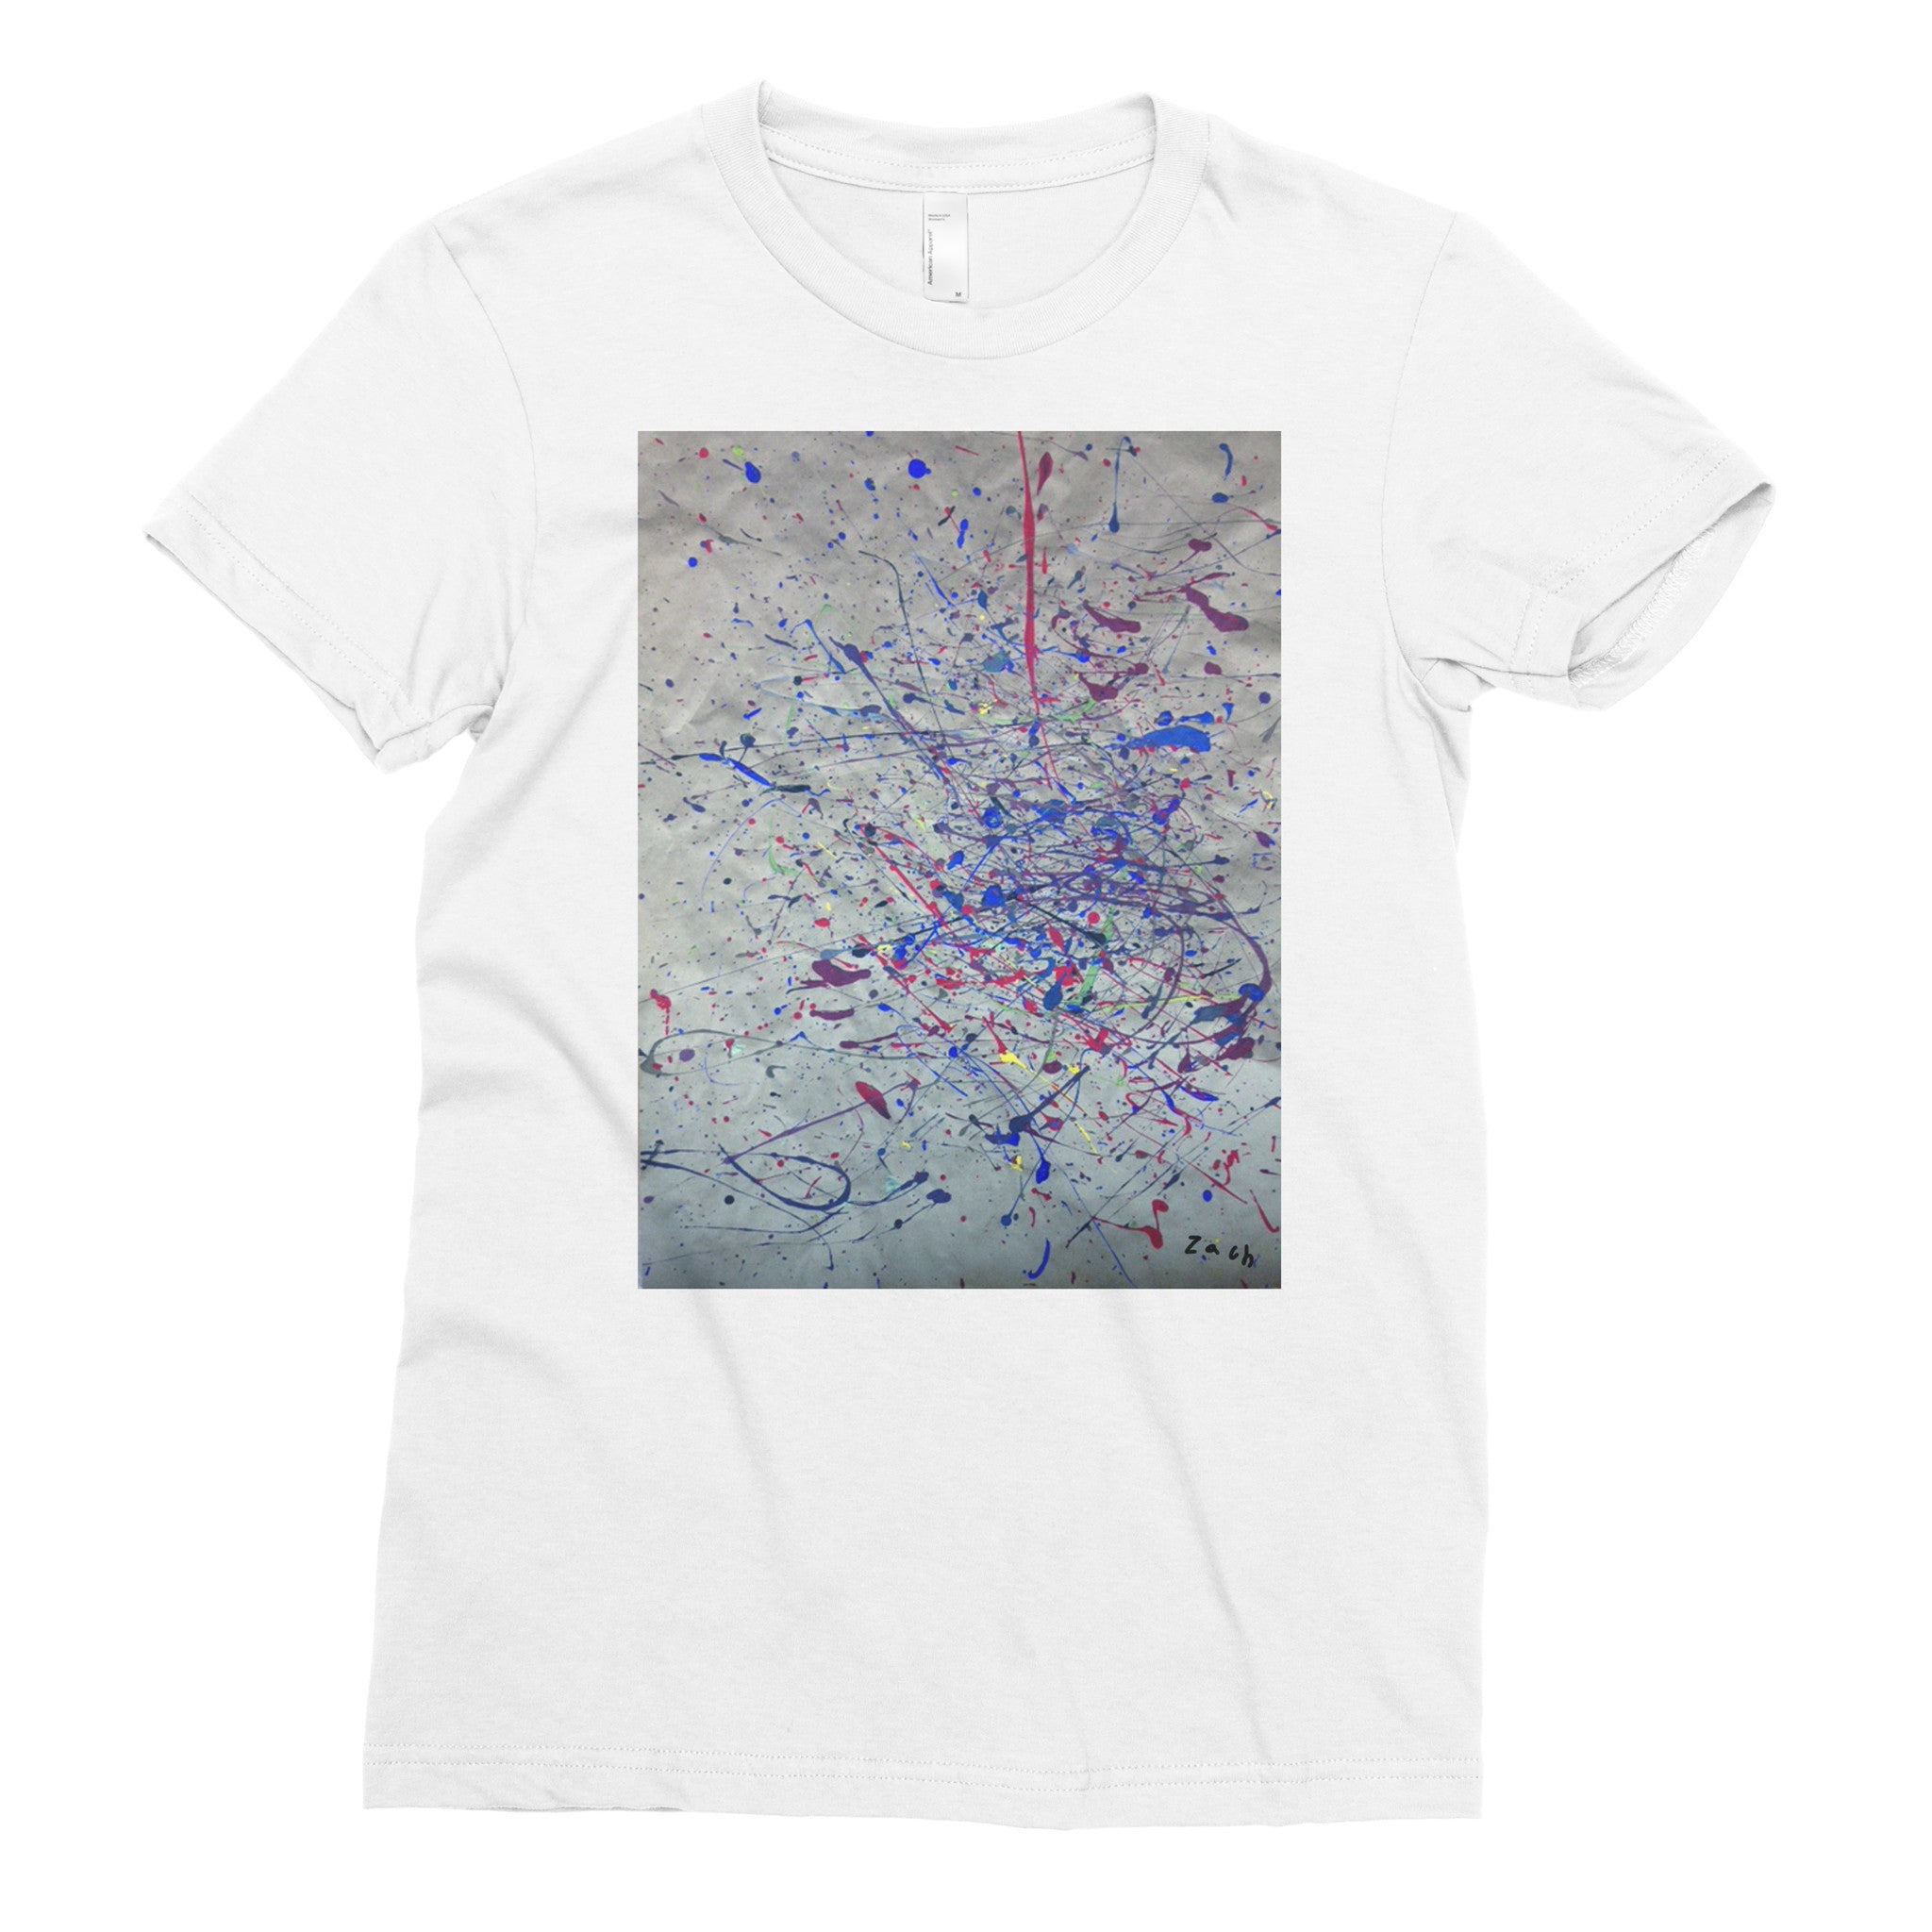 Zachson Pollock by Zach, 2nd grade - Adult T-shirt - Rightside Shirts - 1